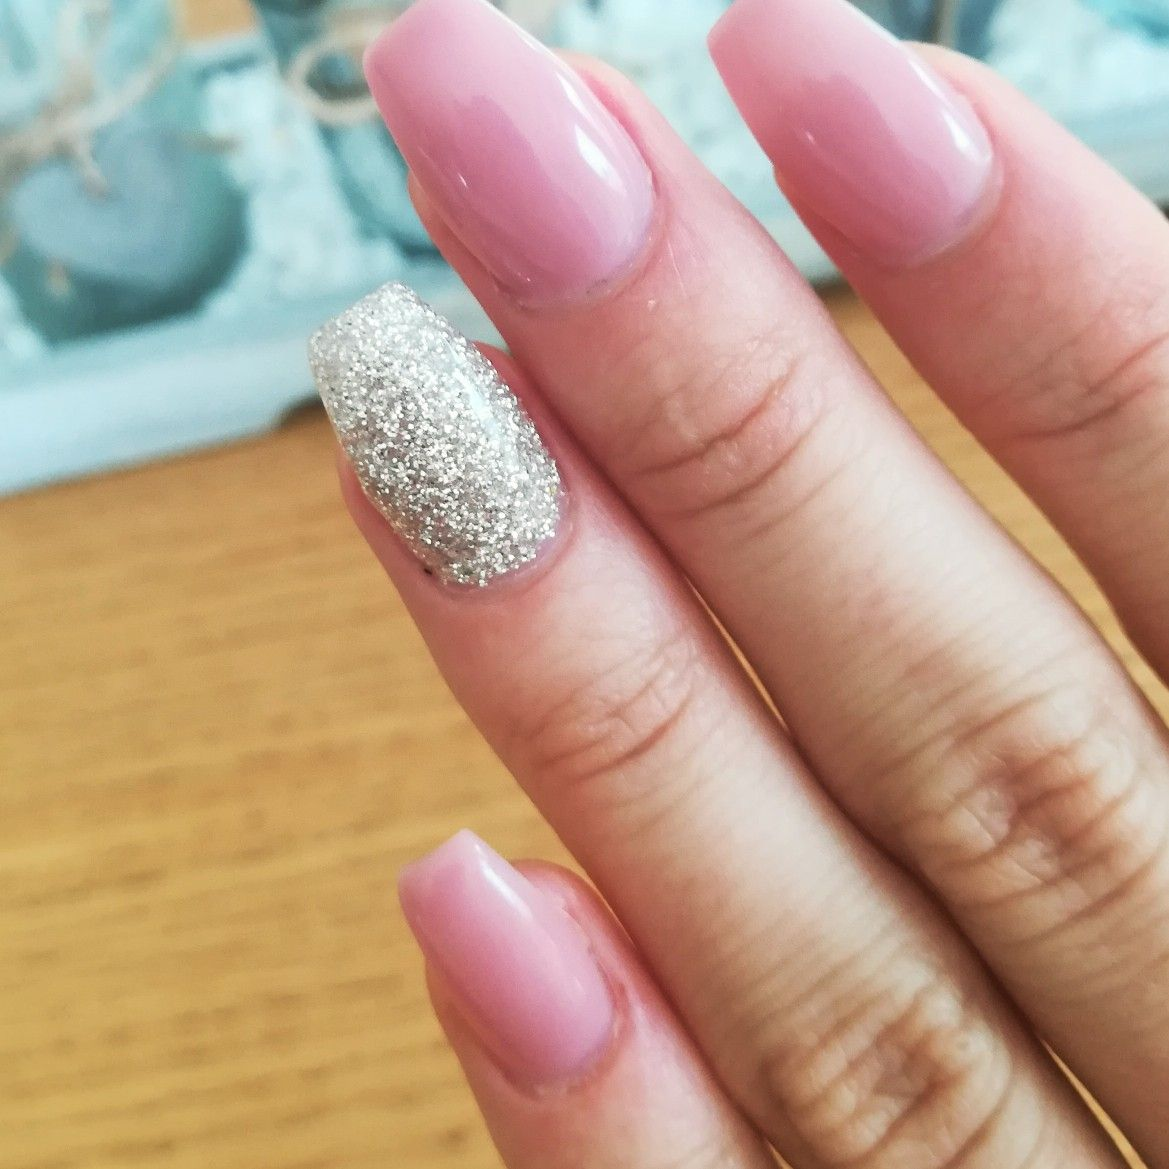 Rosa #naildesign #rose #rosa #glitzer #nagel #nägel #design #beauty ...